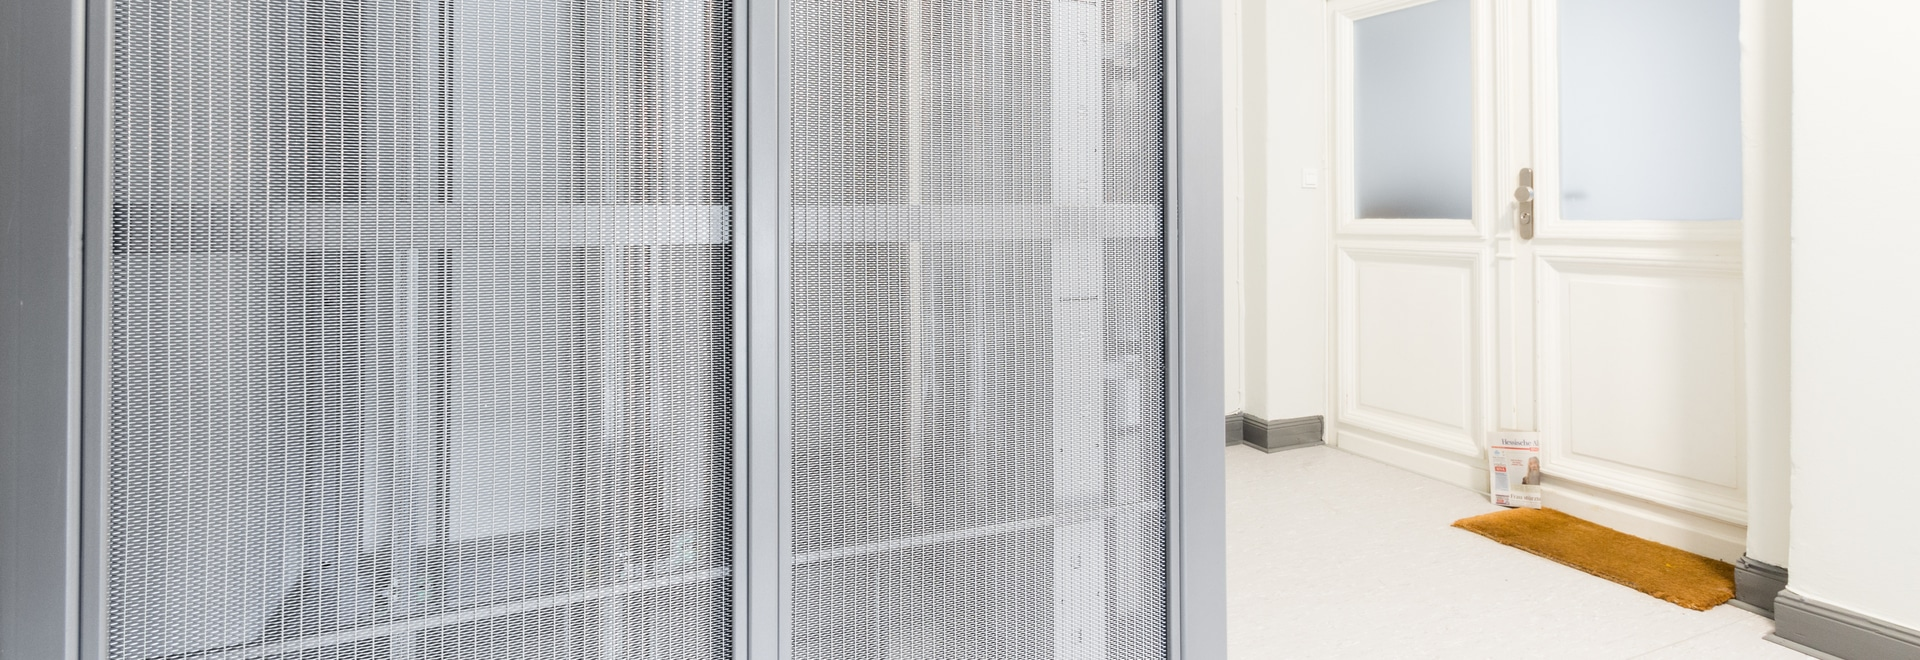 Elevator cladding with stainless steel mesh